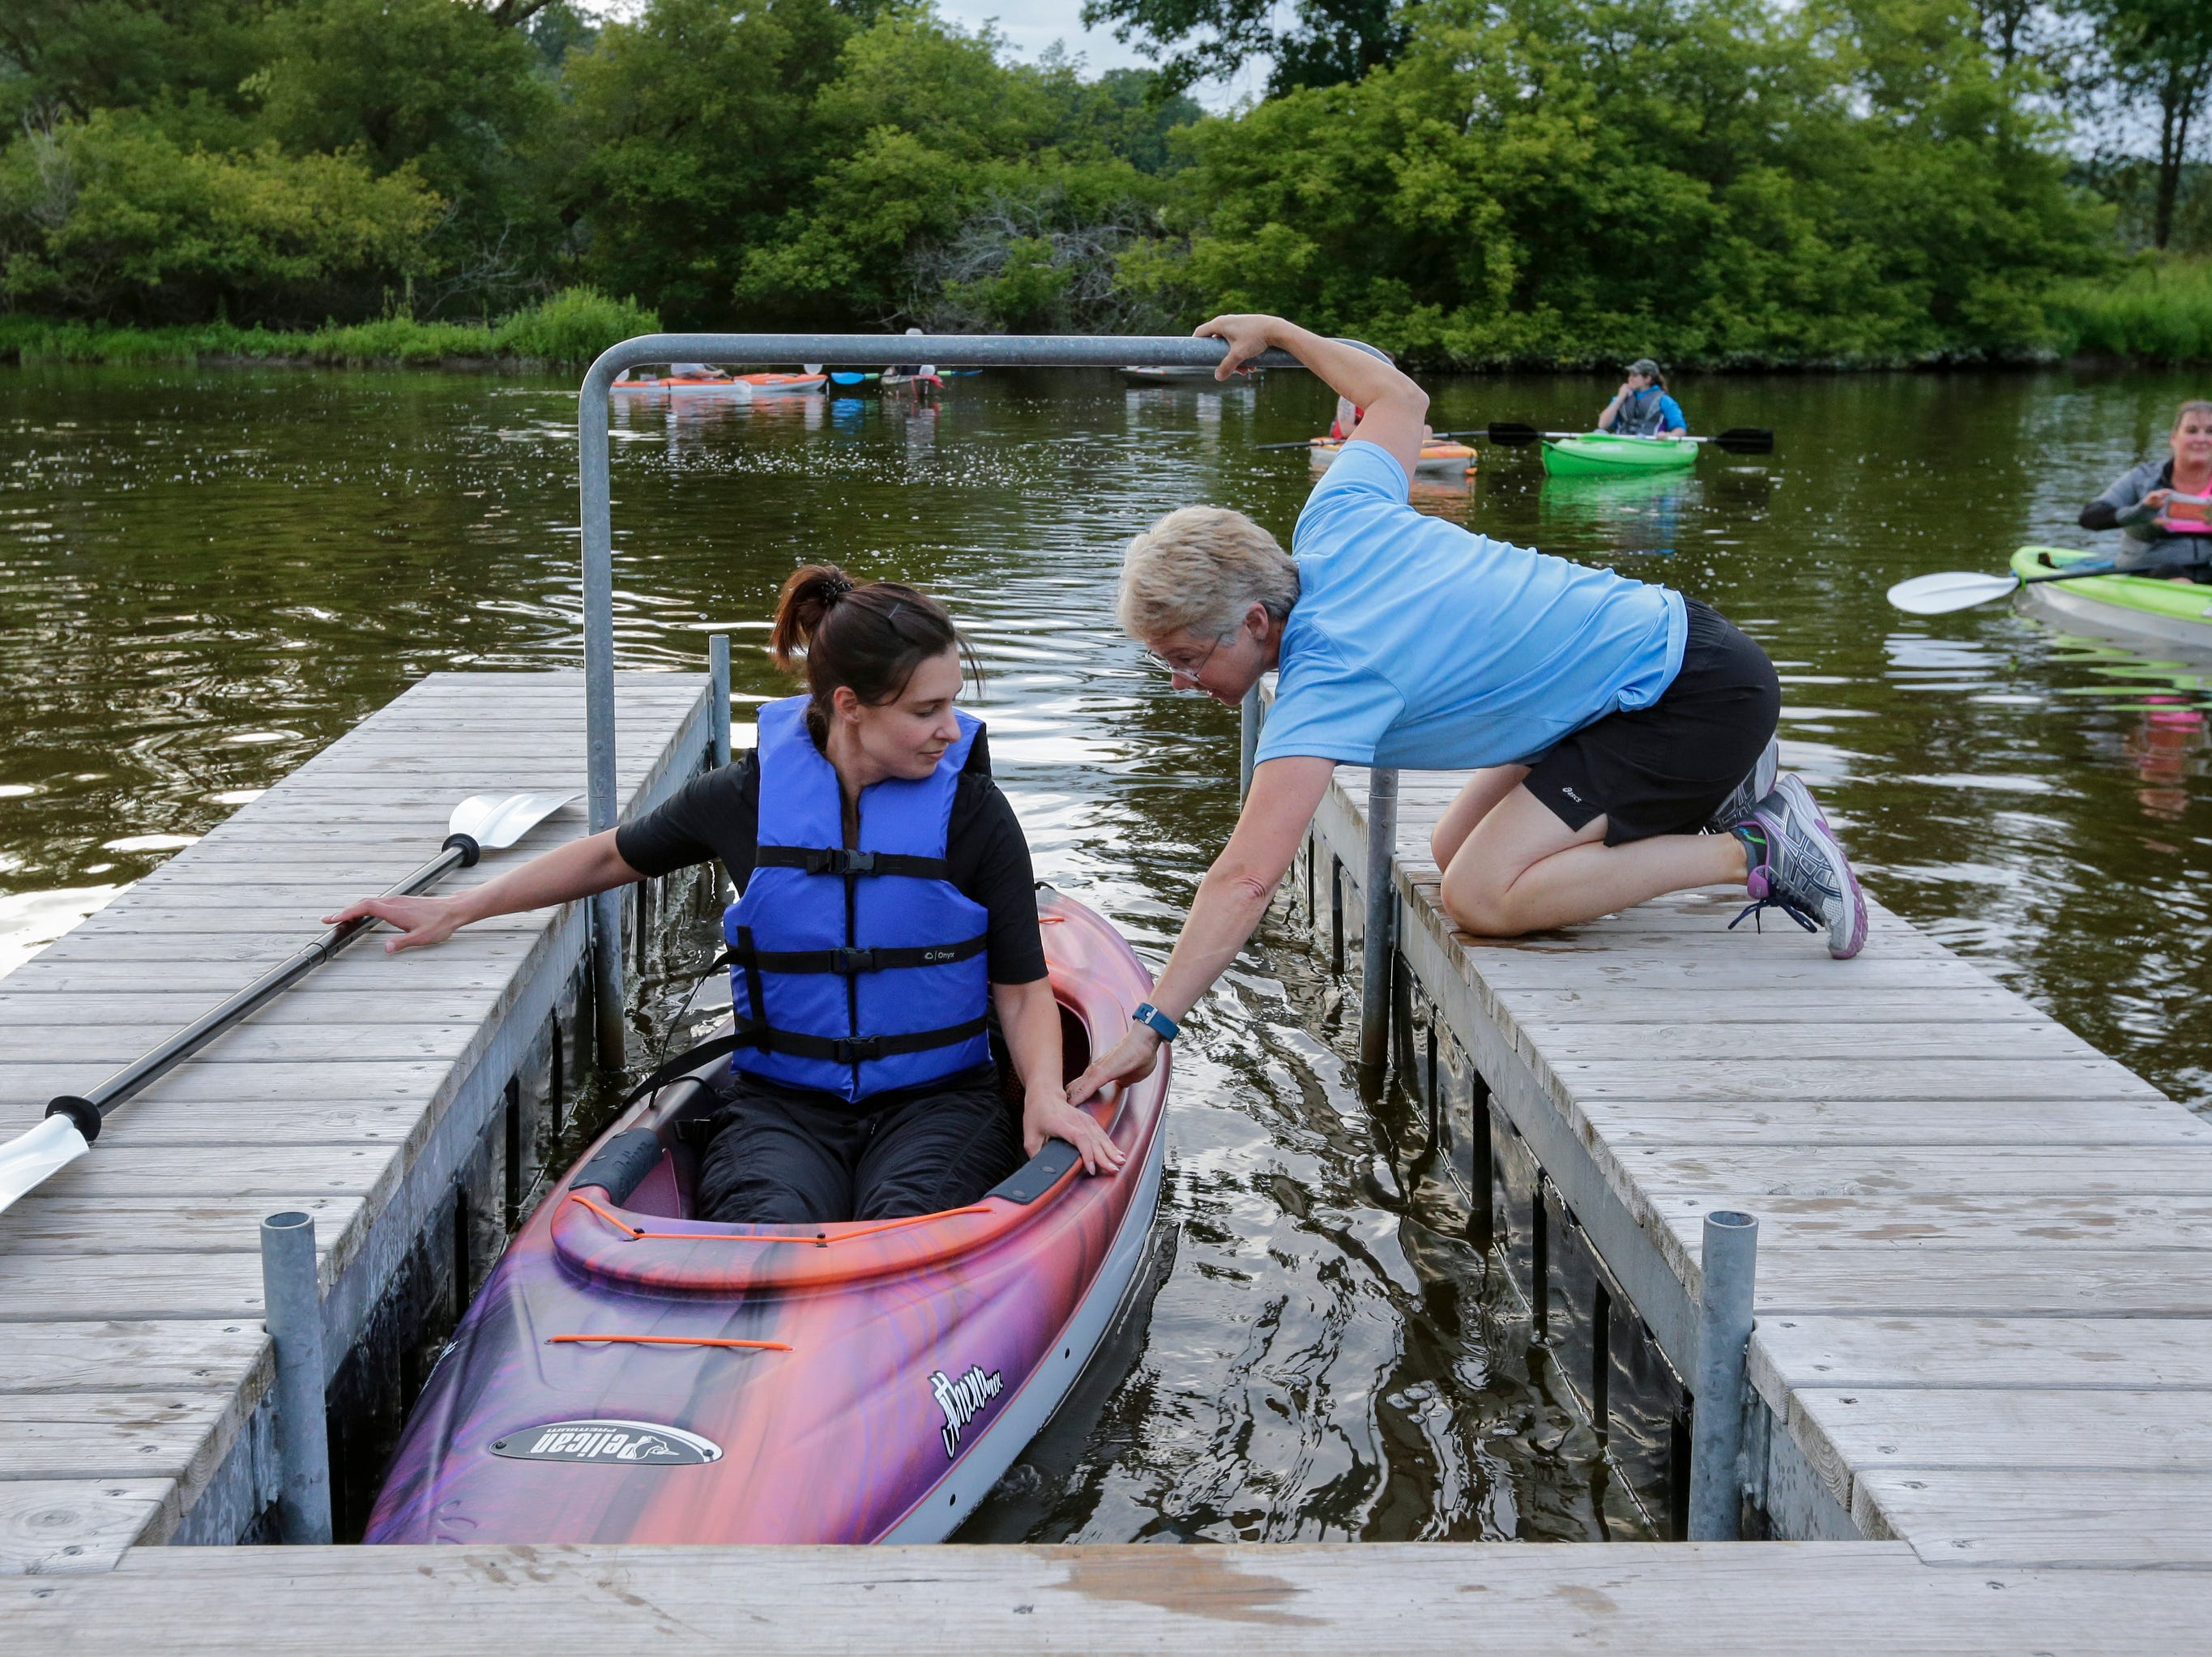 Kim Kettner, right, helps Steph Evenson into her kayak as paddlers set out at Lower Henry Schuette Park for a full moon paddle down the Manitowoc River Friday, July 27, 2018, in Manitowoc, Wis. Josh Clark/USA TODAY NETWORK-Wisconsin